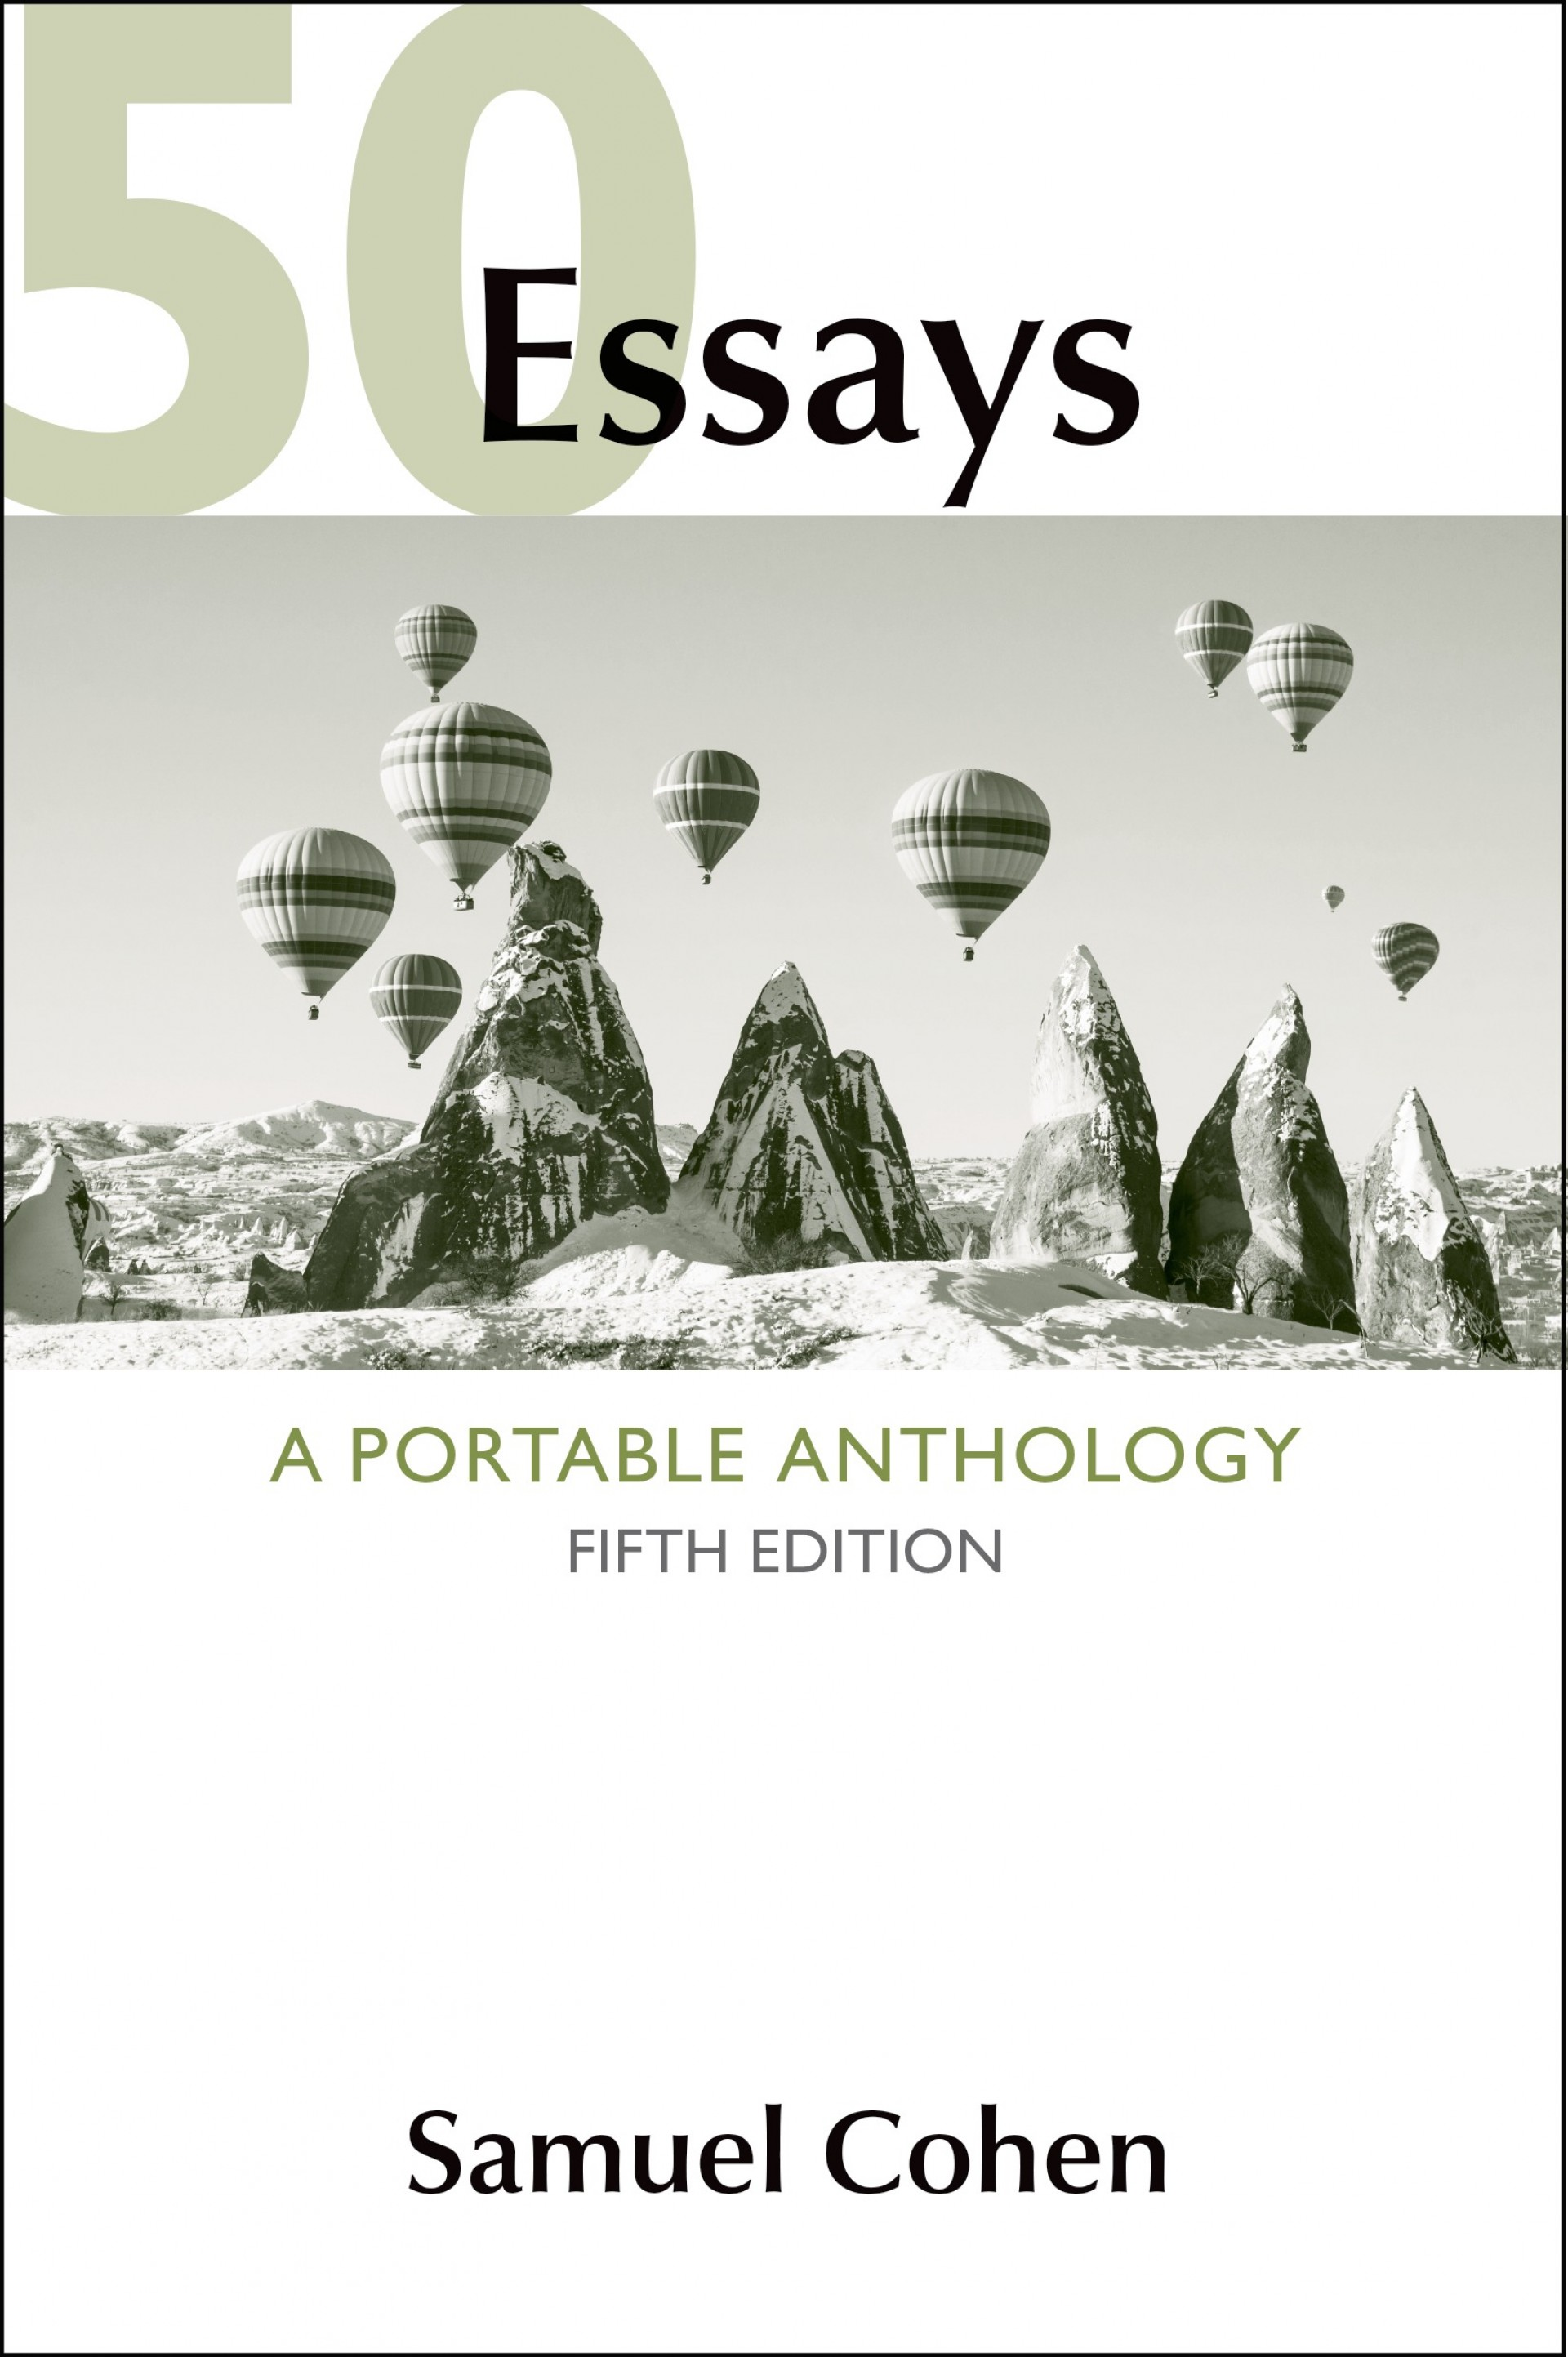 008 Essays Table Of Contents Essay Example Best 50 Great A Portable Anthology 4th Edition 1920